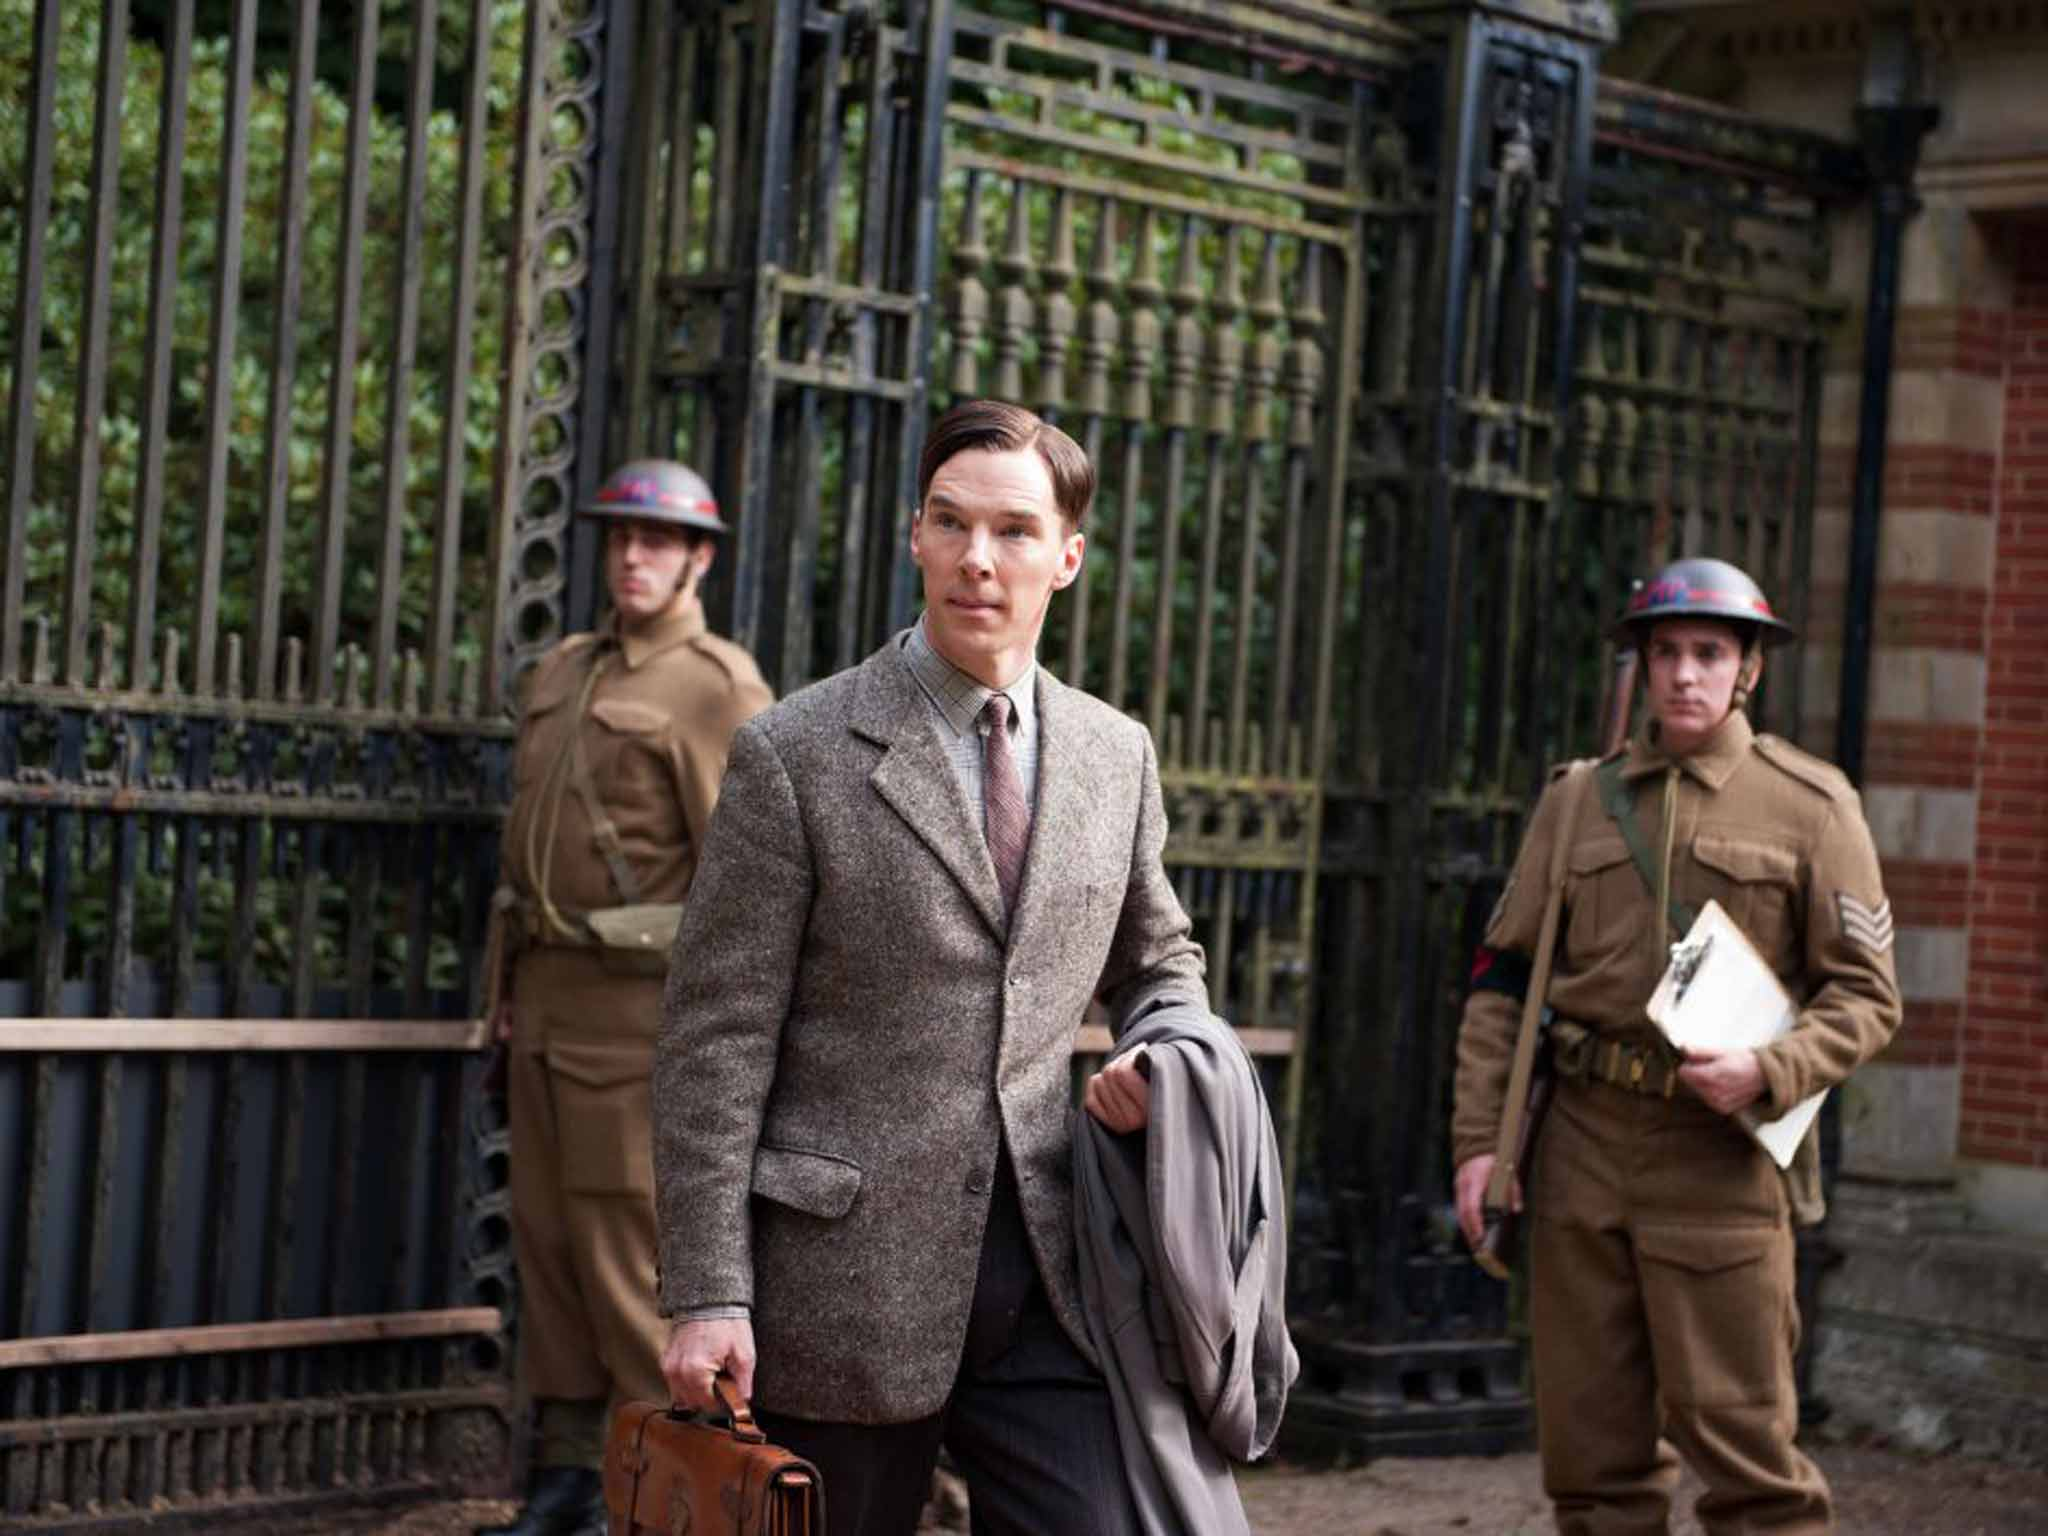 Benedict Cumberbatch's Alan Turing gay-rights campaign snubbed by Prince William and Duchess of Cambridge Kate Middleton